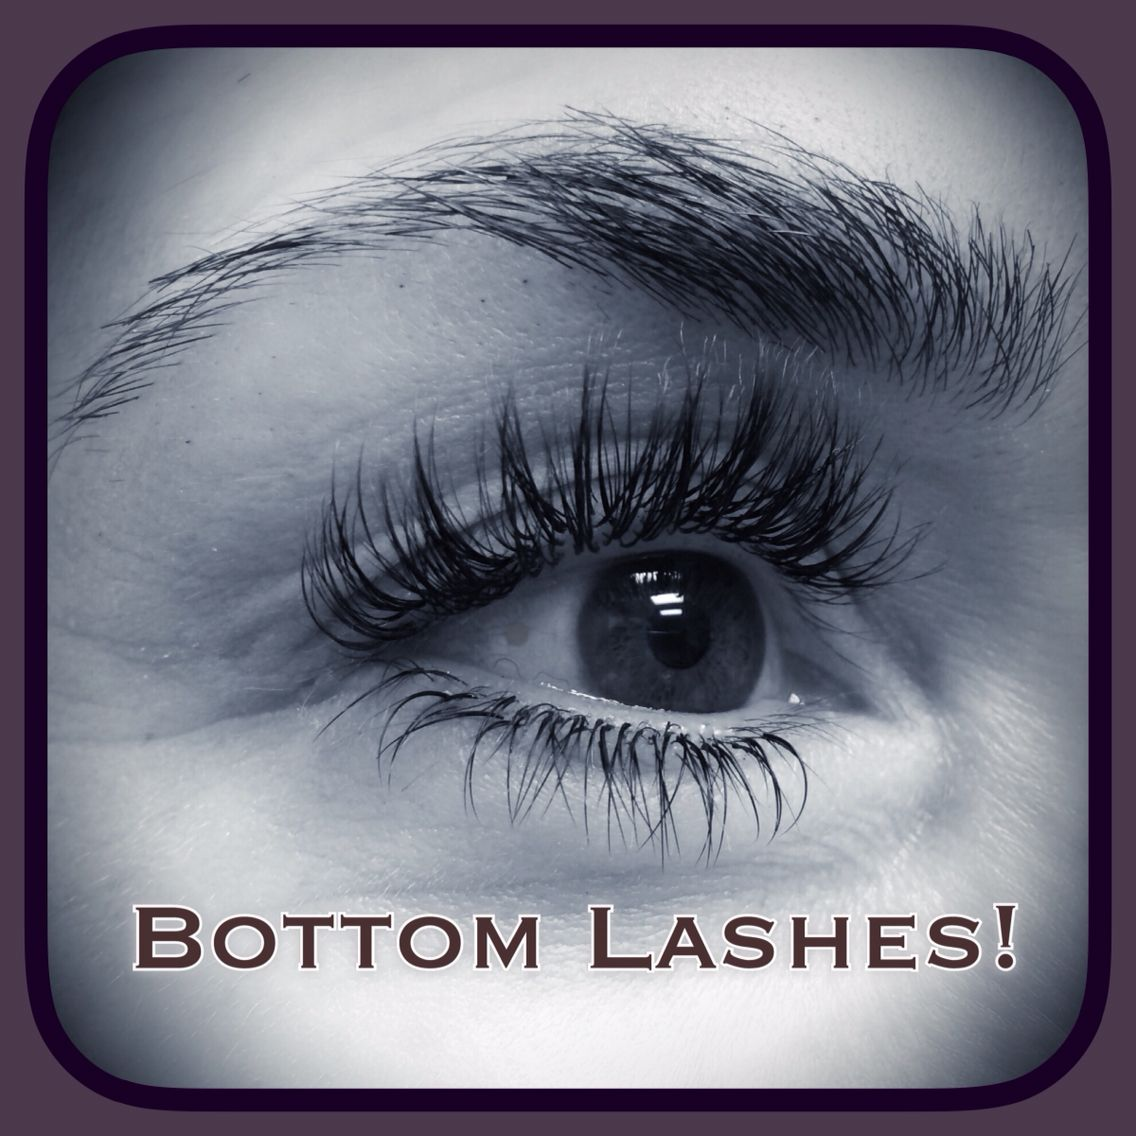 Diy Eyelash Extensions Semi Permanent Eyelash Extensions On Top And Bottom Lashes